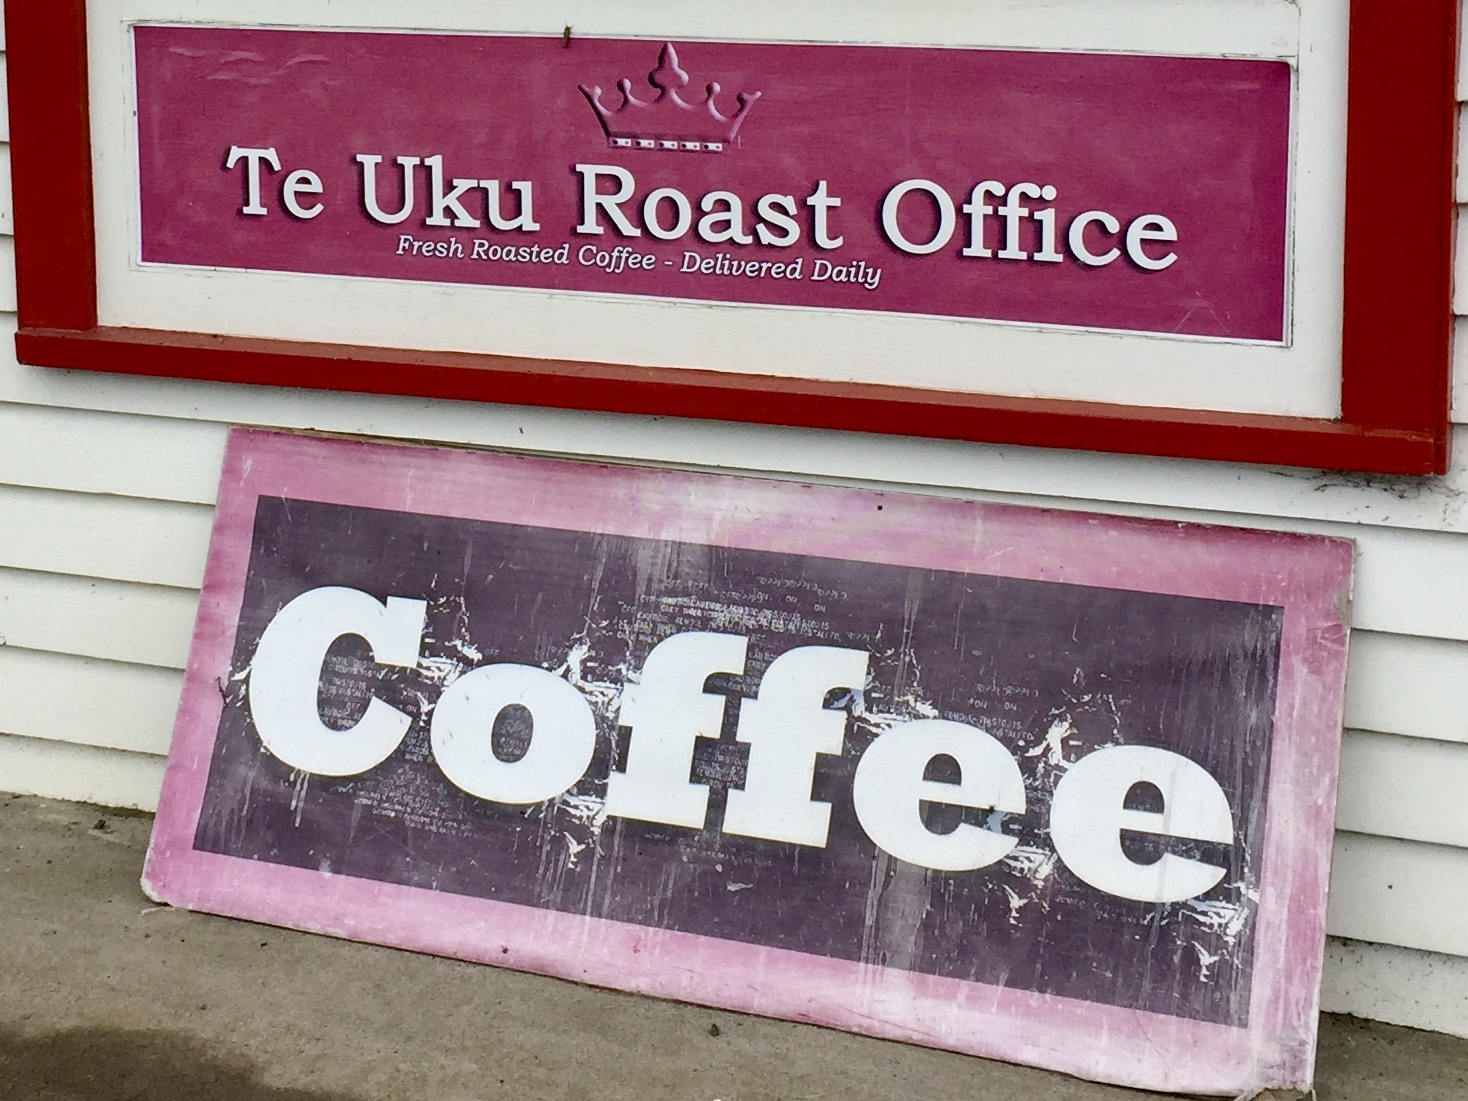 Te Uku Roast Office